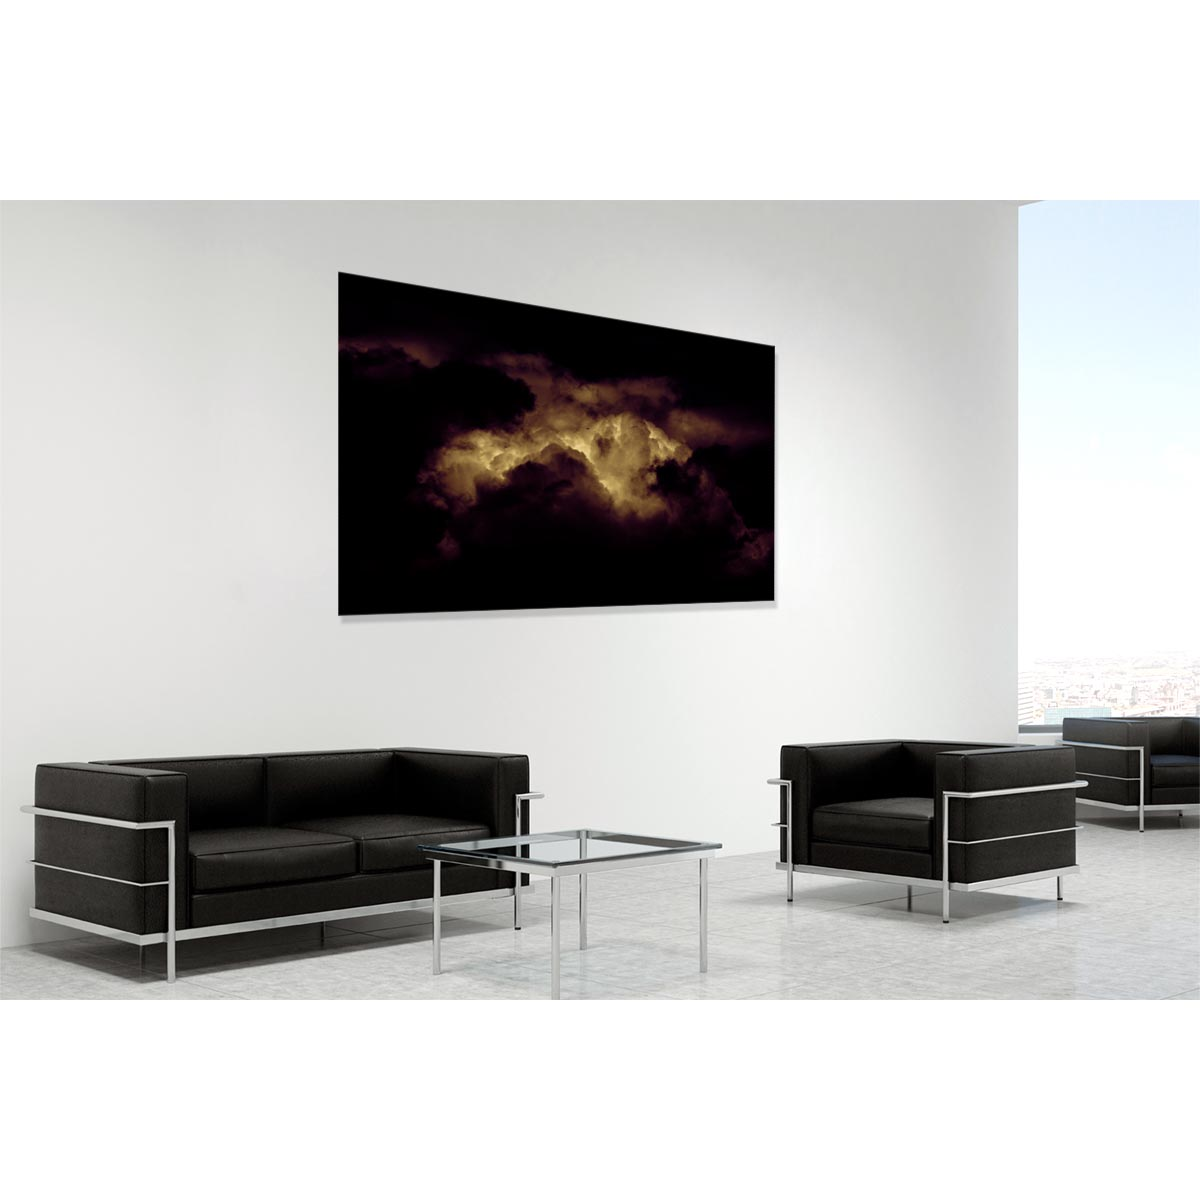 Silent Redux - contemporary limited edition fine art photograph by Stephen S T Bradley shown in a room setting